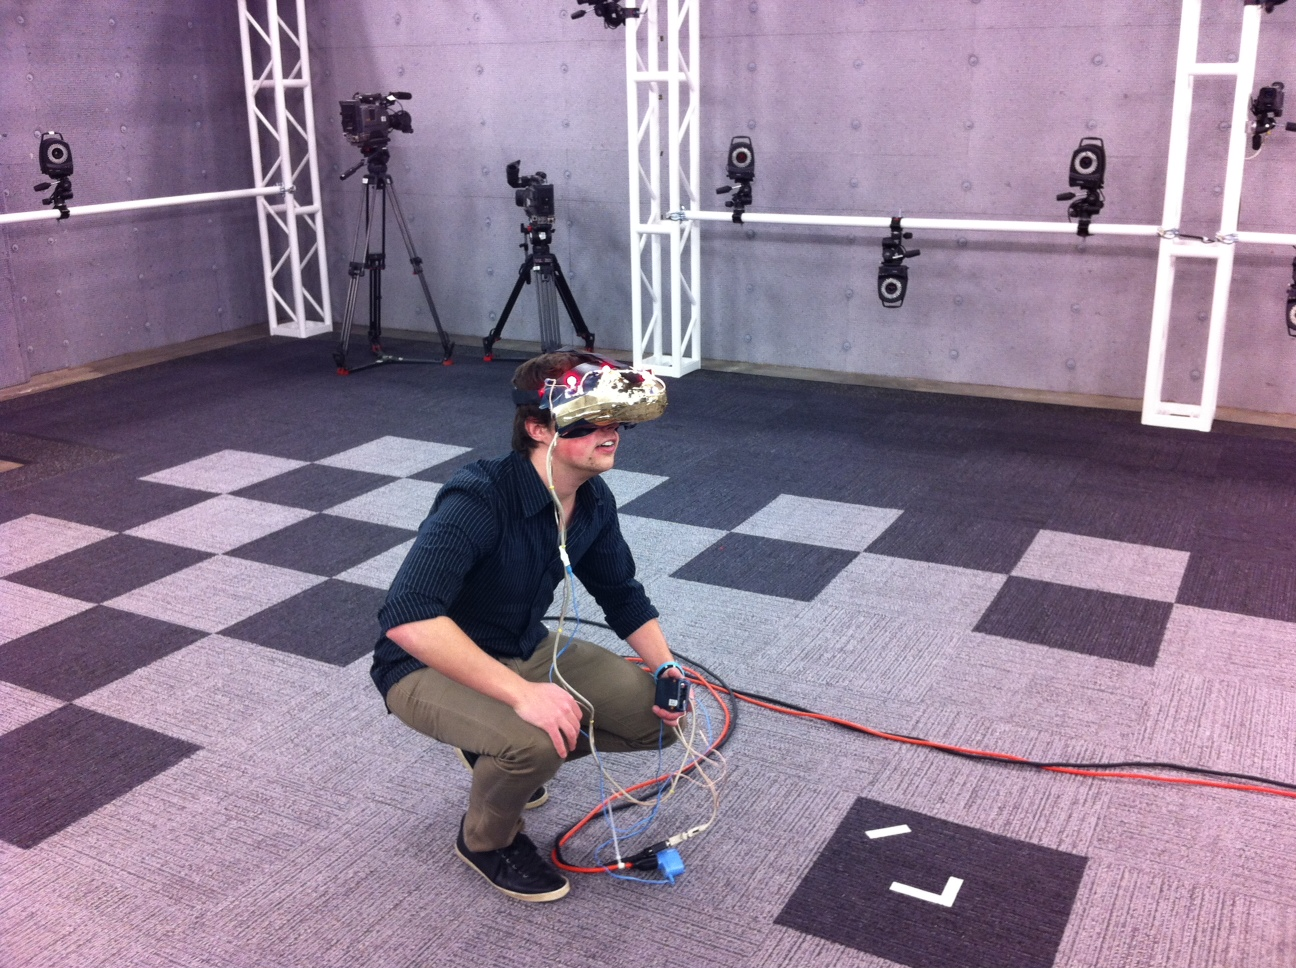 Project Holodeck used motion tracking cameras with the Oculus Rift to try to simulate a Holodeck-like enviroment.